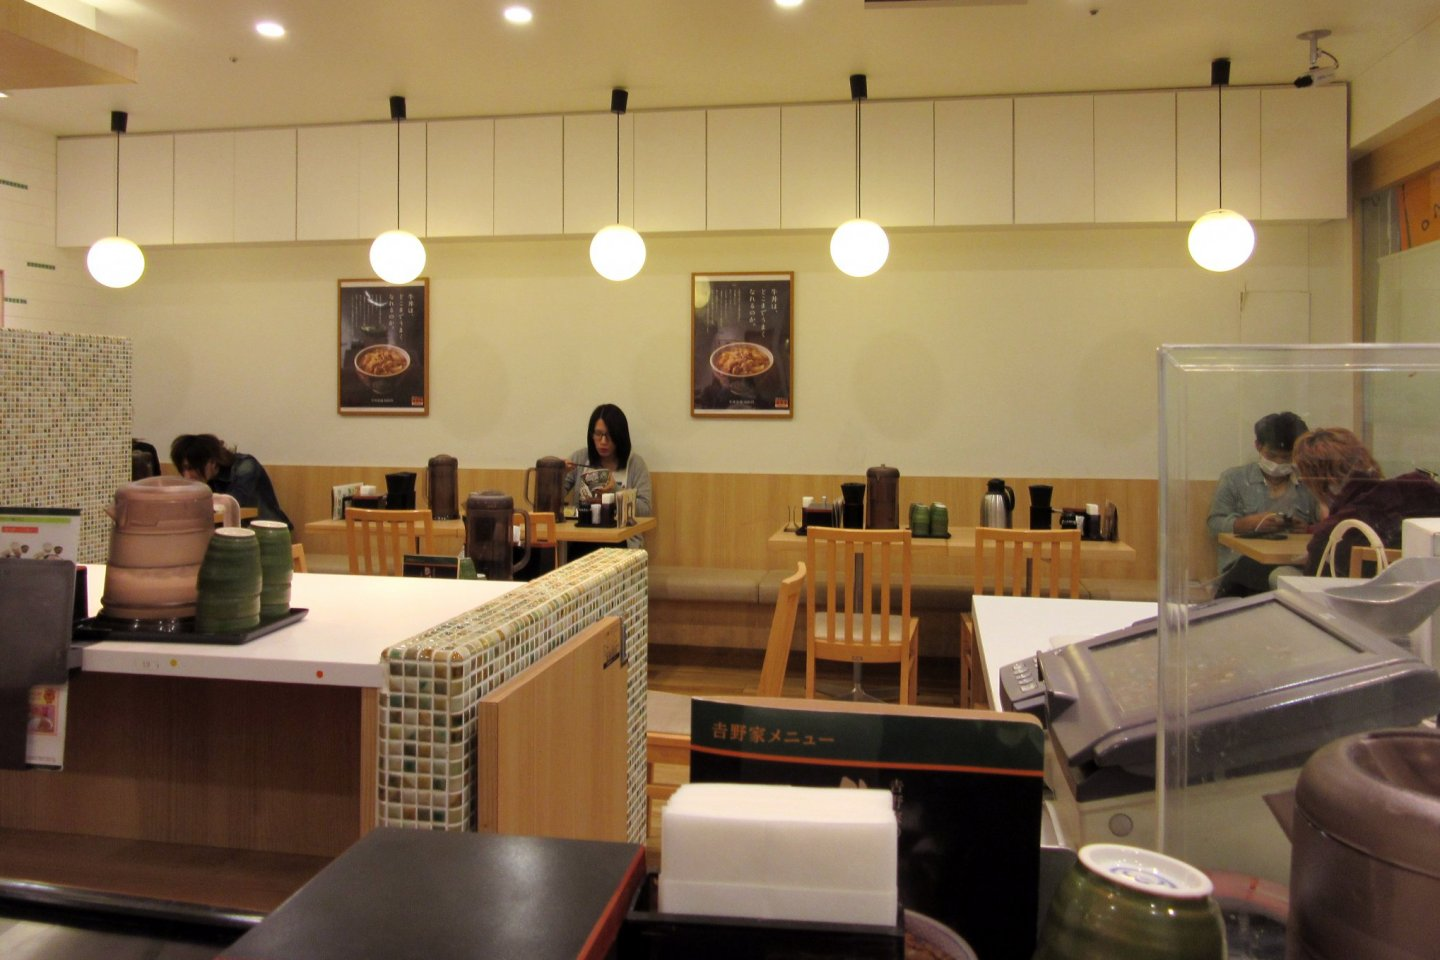 Yoshinoya has a very simple interior